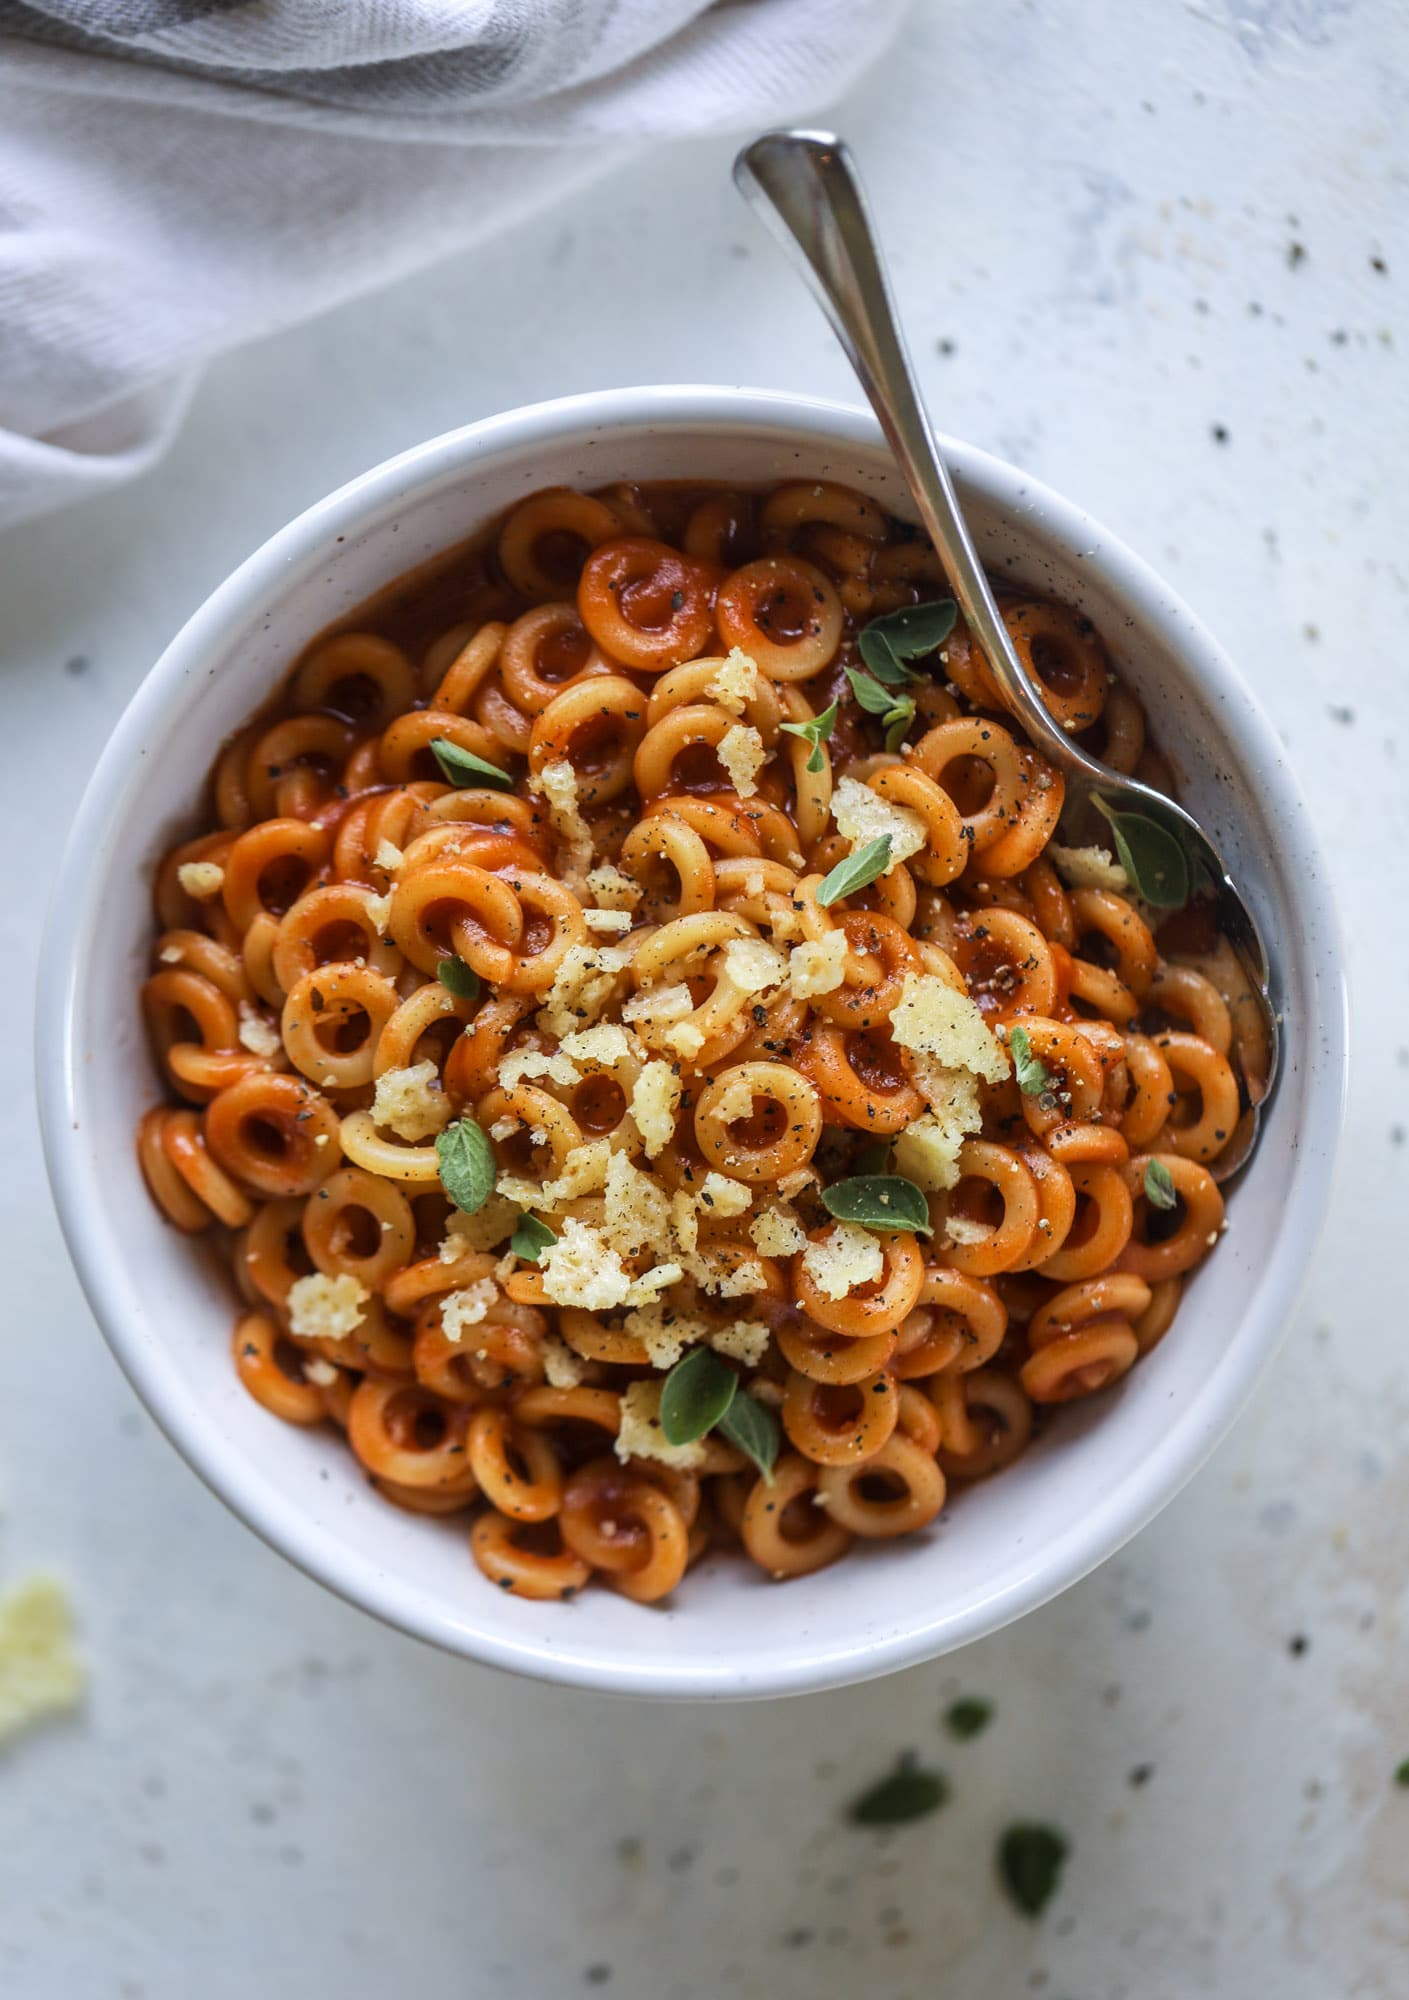 These homemade spaghettios are the ultimate comfort food! They come together in less than 30 minutes, are super easy and flavorful and topped with crispy crunchy manchego cheese that takes the taste over the top! I howsweeteats.com #homemade #spaghettios